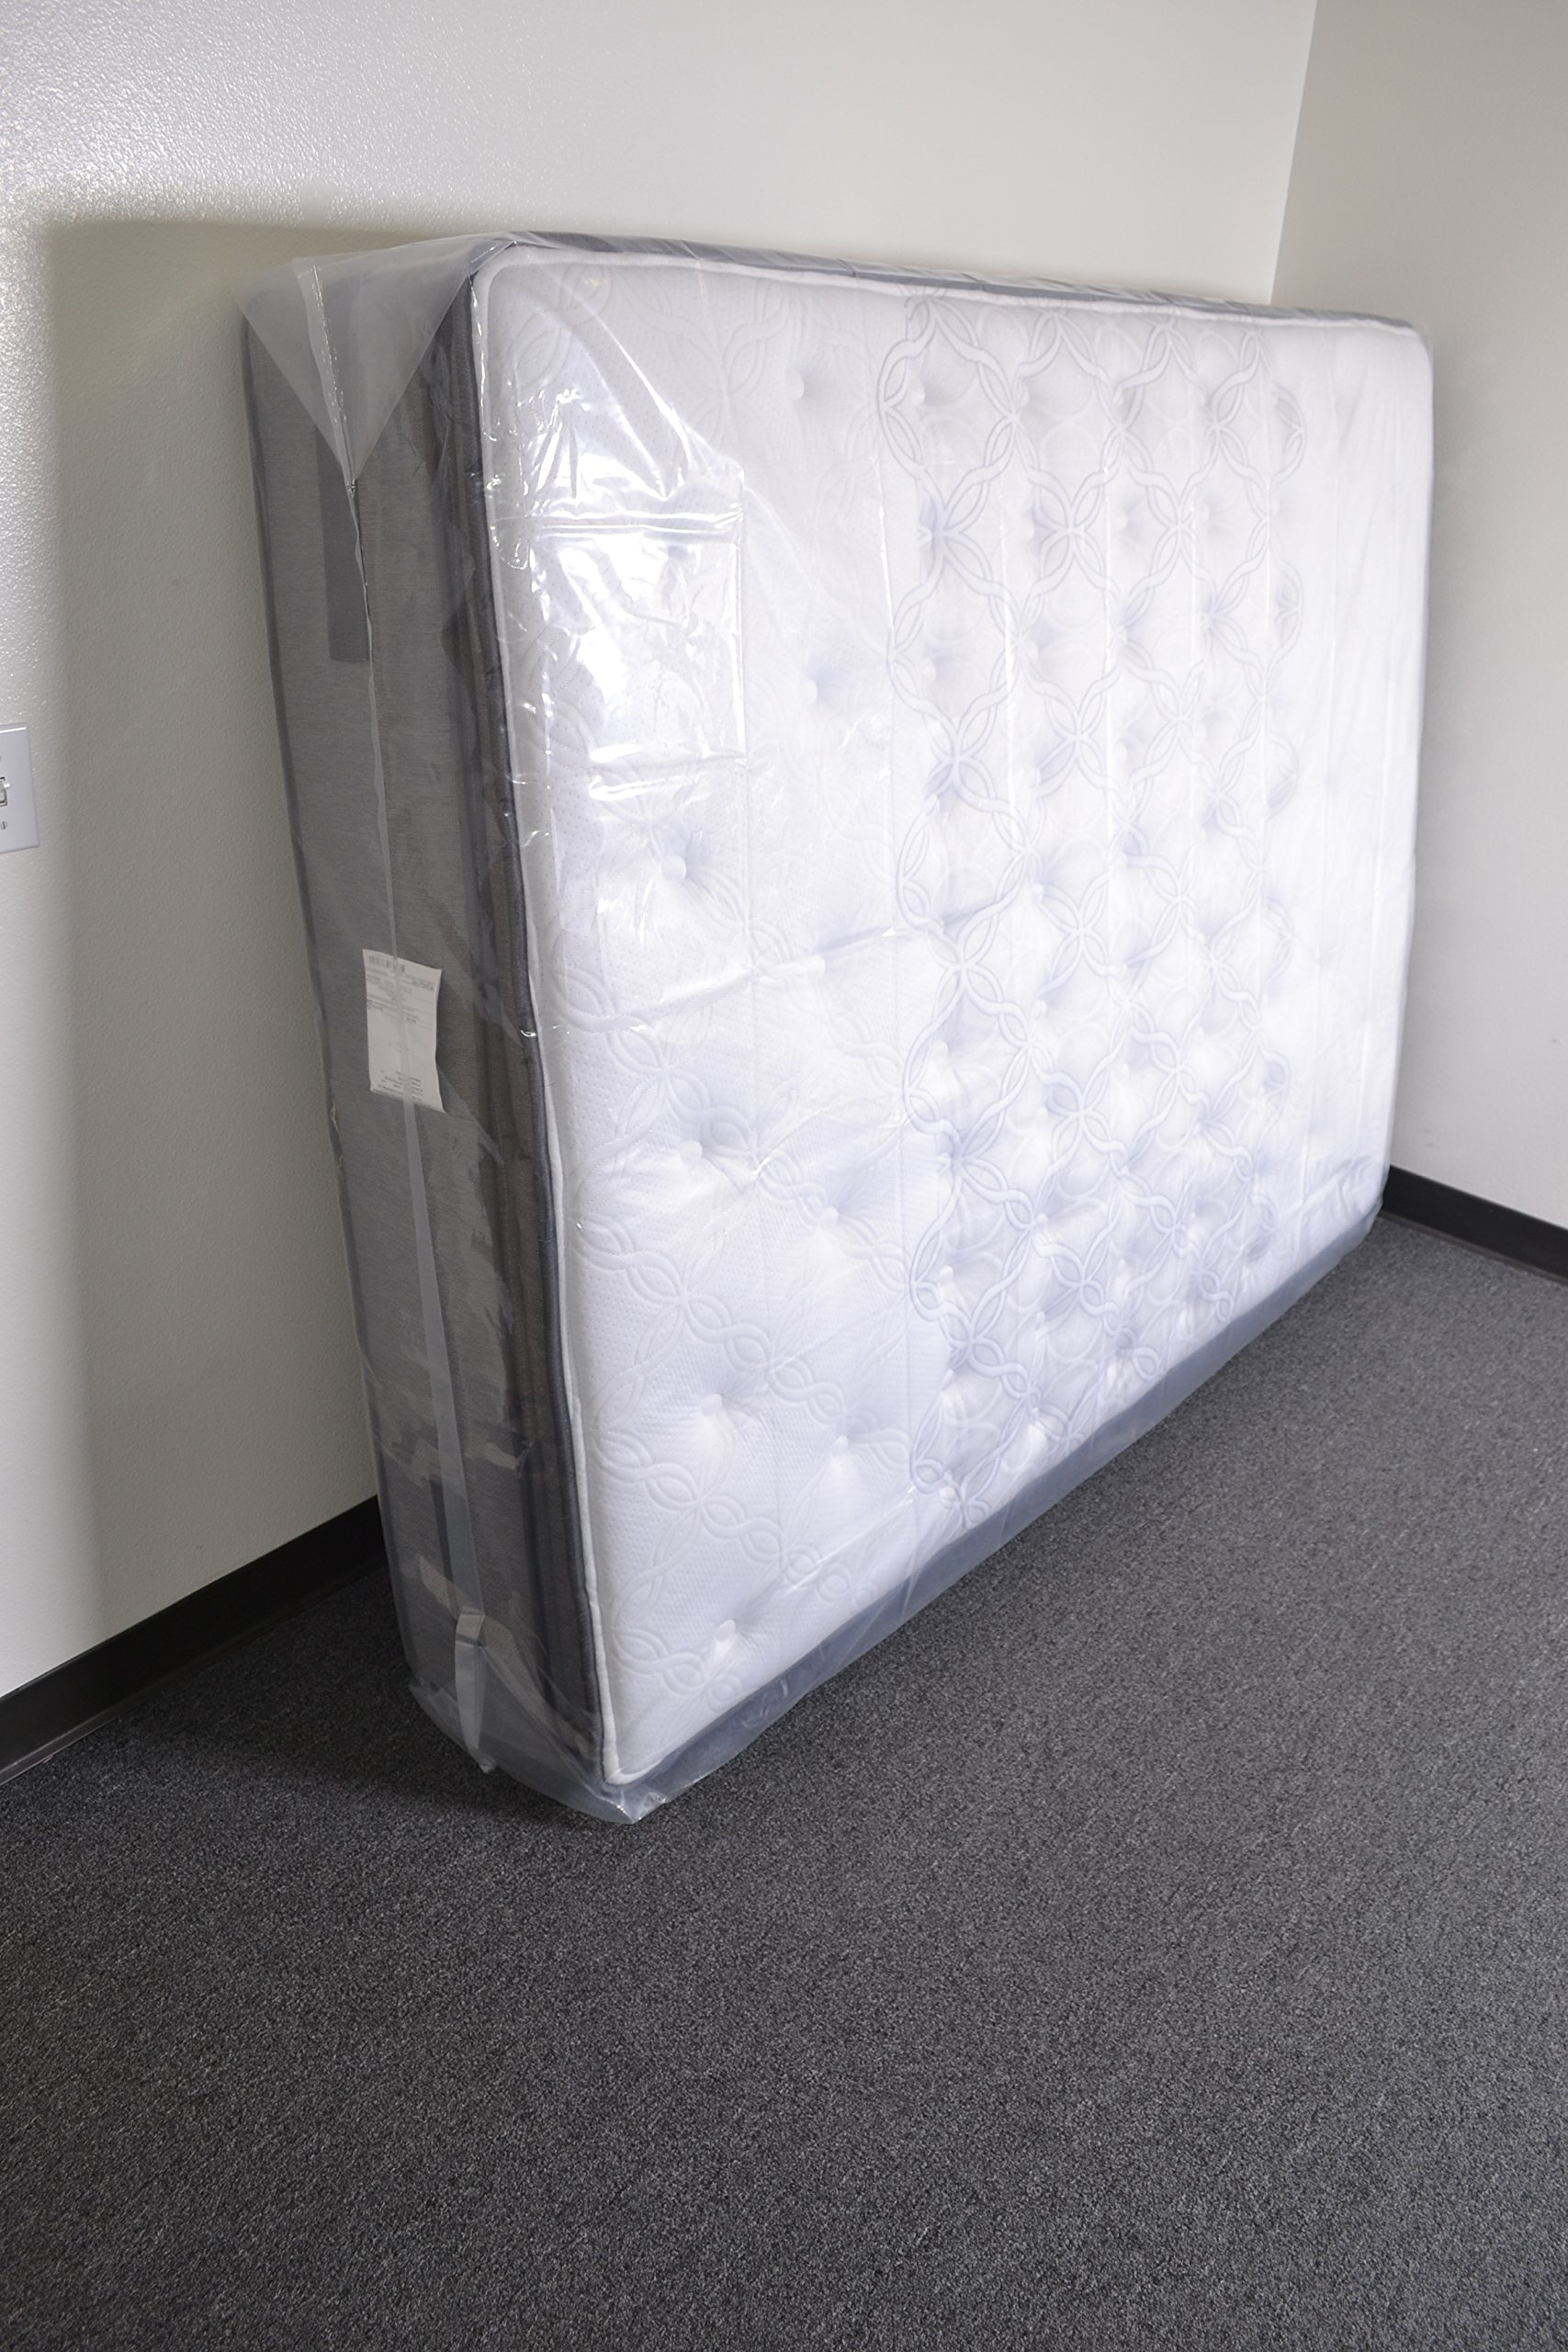 Mattress Bag for Moving Long-term Strorage - QUEEN size ...